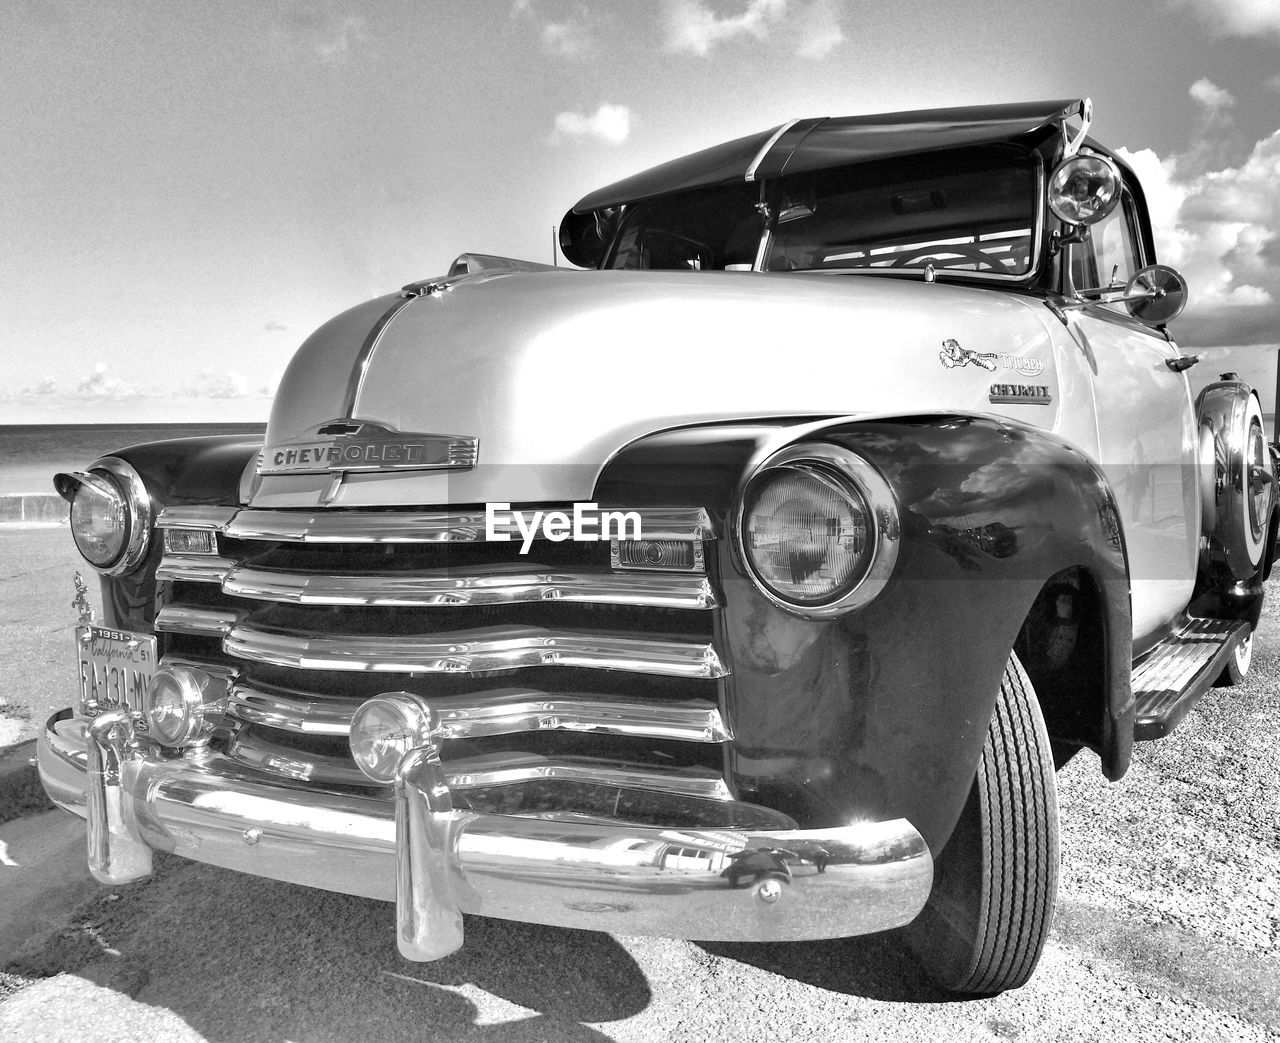 mode of transportation, land vehicle, transportation, car, retro styled, motor vehicle, headlight, day, vintage car, sky, metal, no people, nature, stationary, front view, outdoors, sunlight, antique, cloud - sky, luxury, chrome